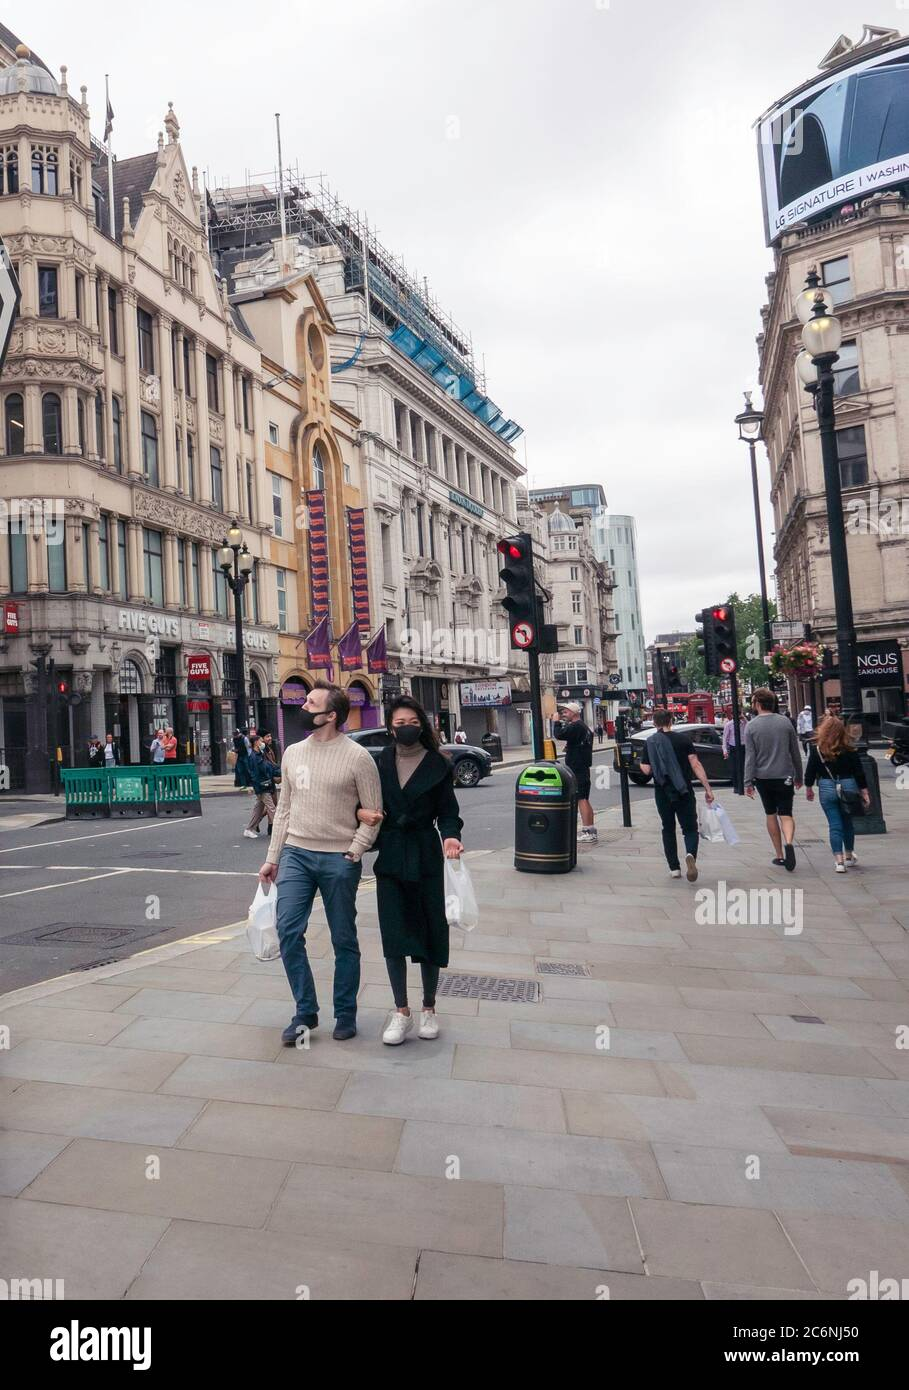 A man and woman with face coverings in Piccadilly Circus during the covid-19 pandemic. Stock Photo